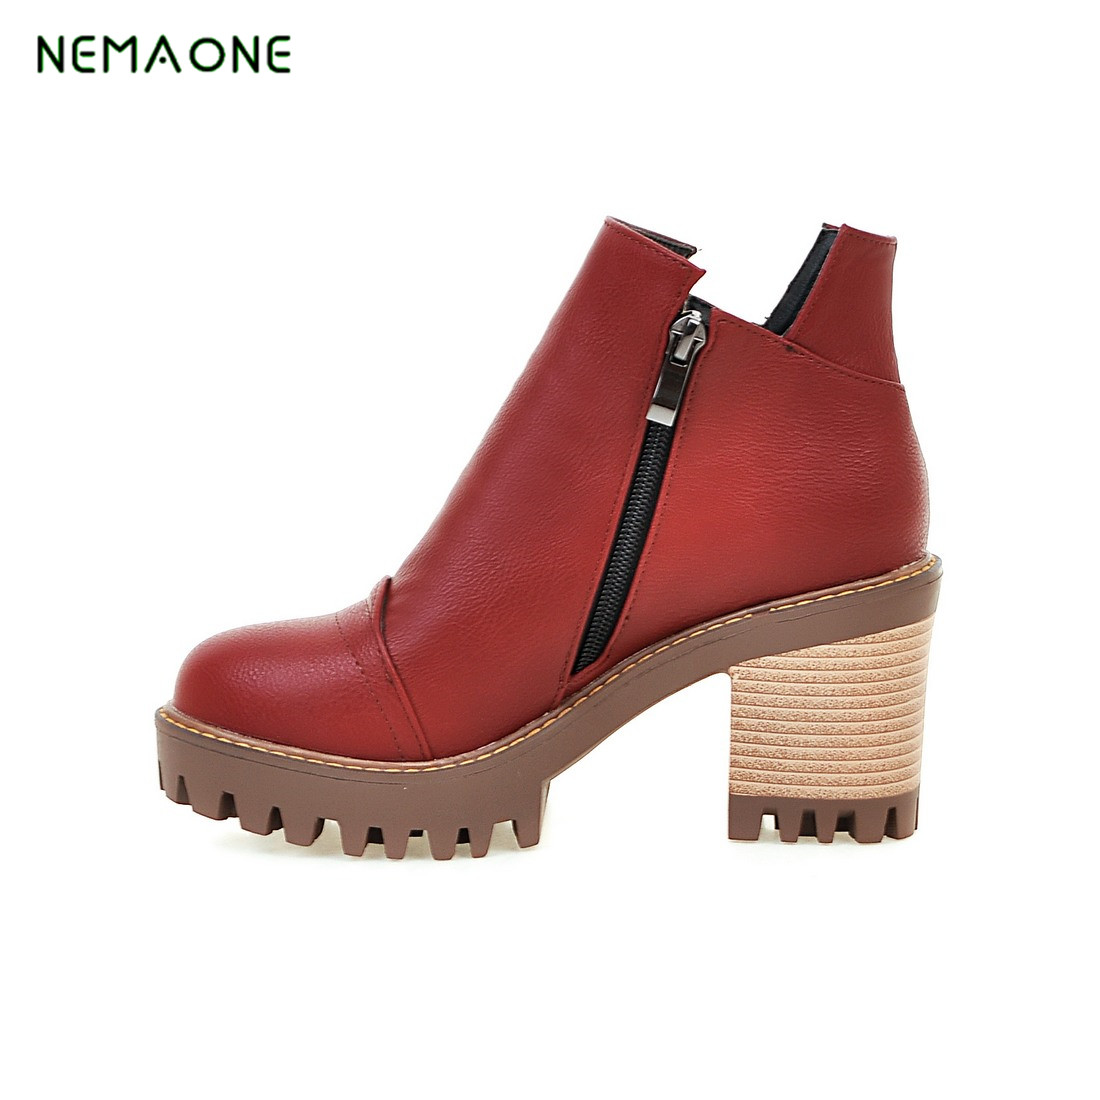 NEMAONE Autumn spring female ankle boots with cut outs square heels round toe platform pu soft leather women fashion boots<br>